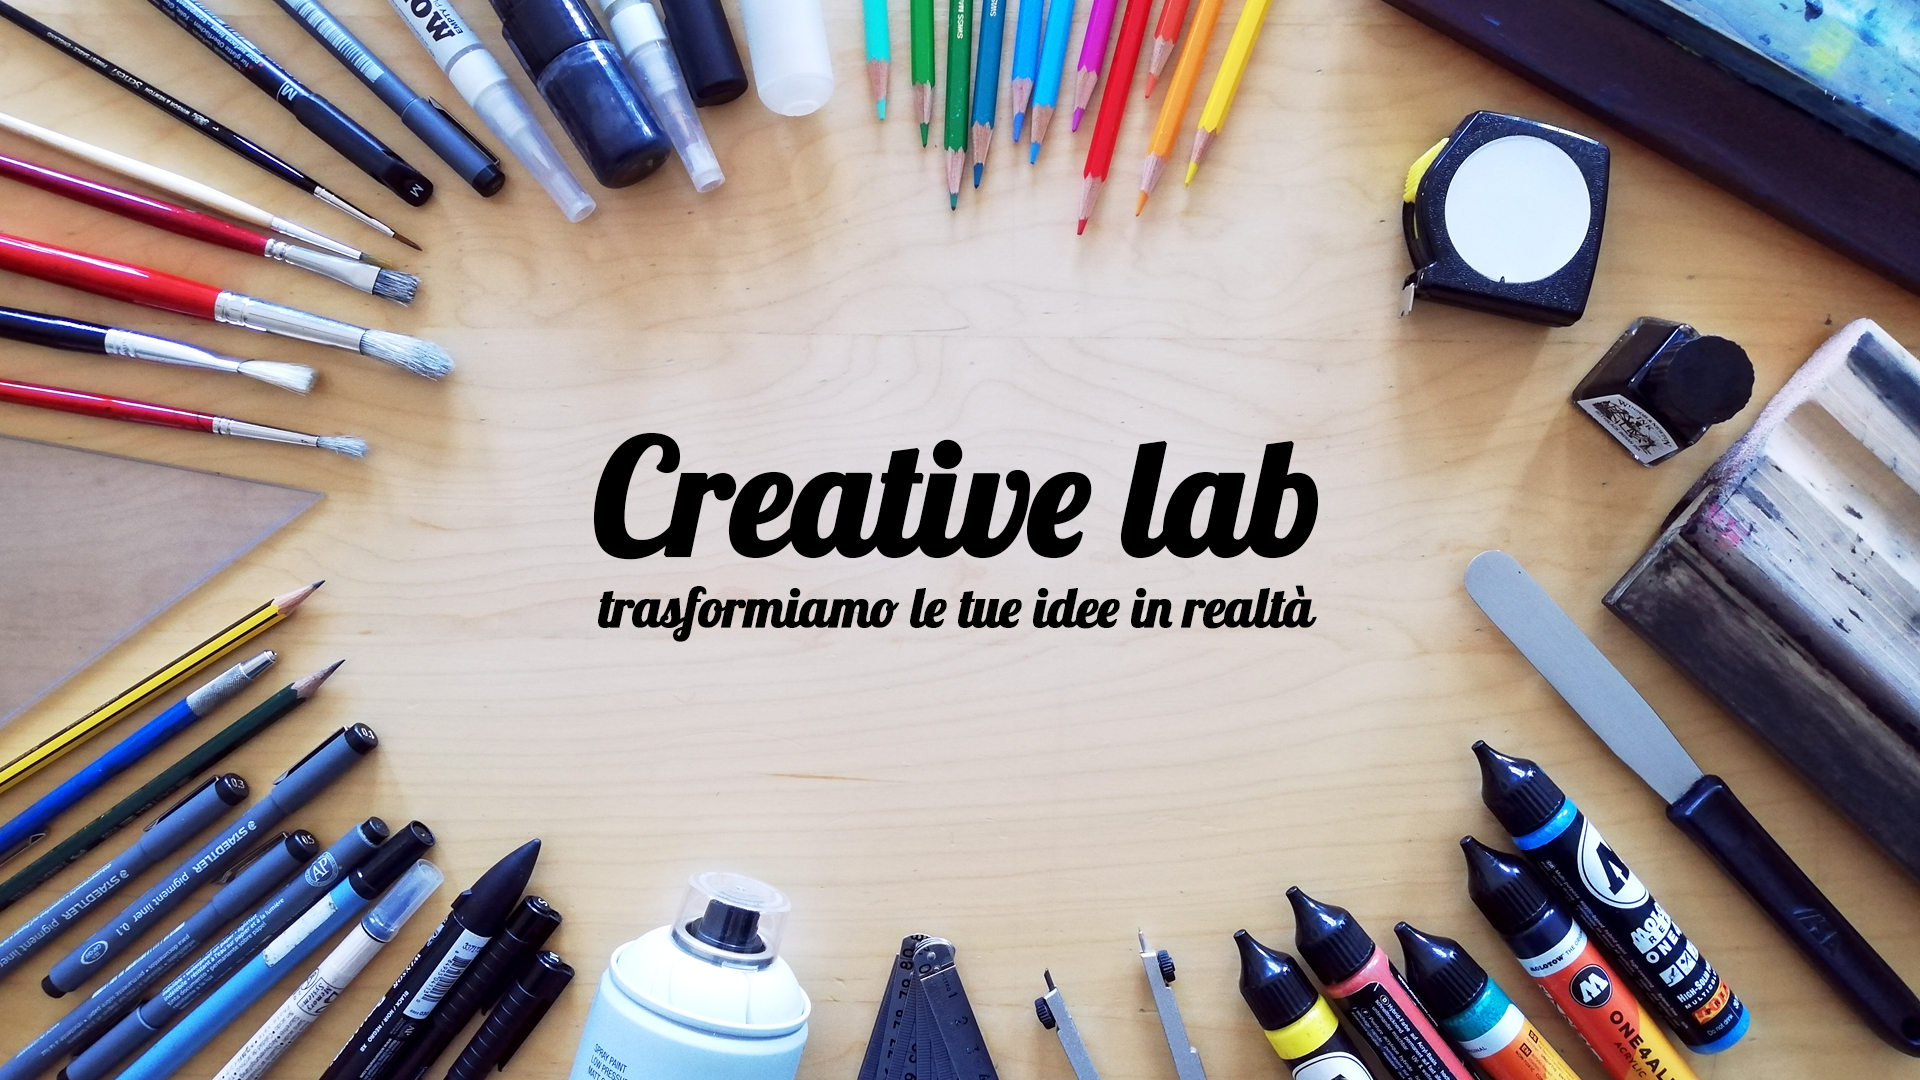 Tela-creative lab